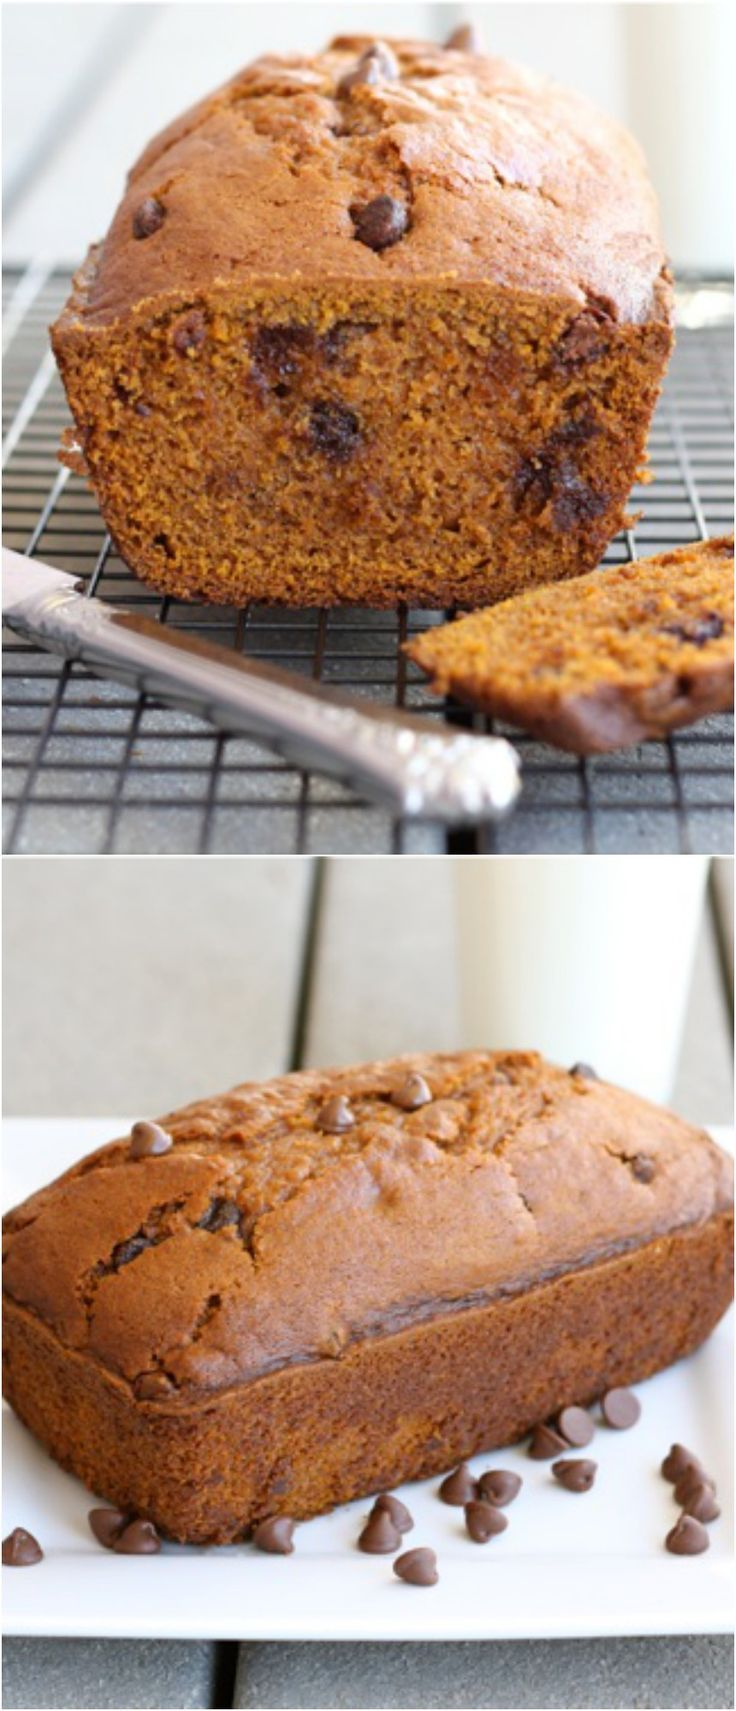 The BEST Pumpkin Chocolate Chip Bread Recipe on http://twopeasandtheirpod.com You have to make this bread!